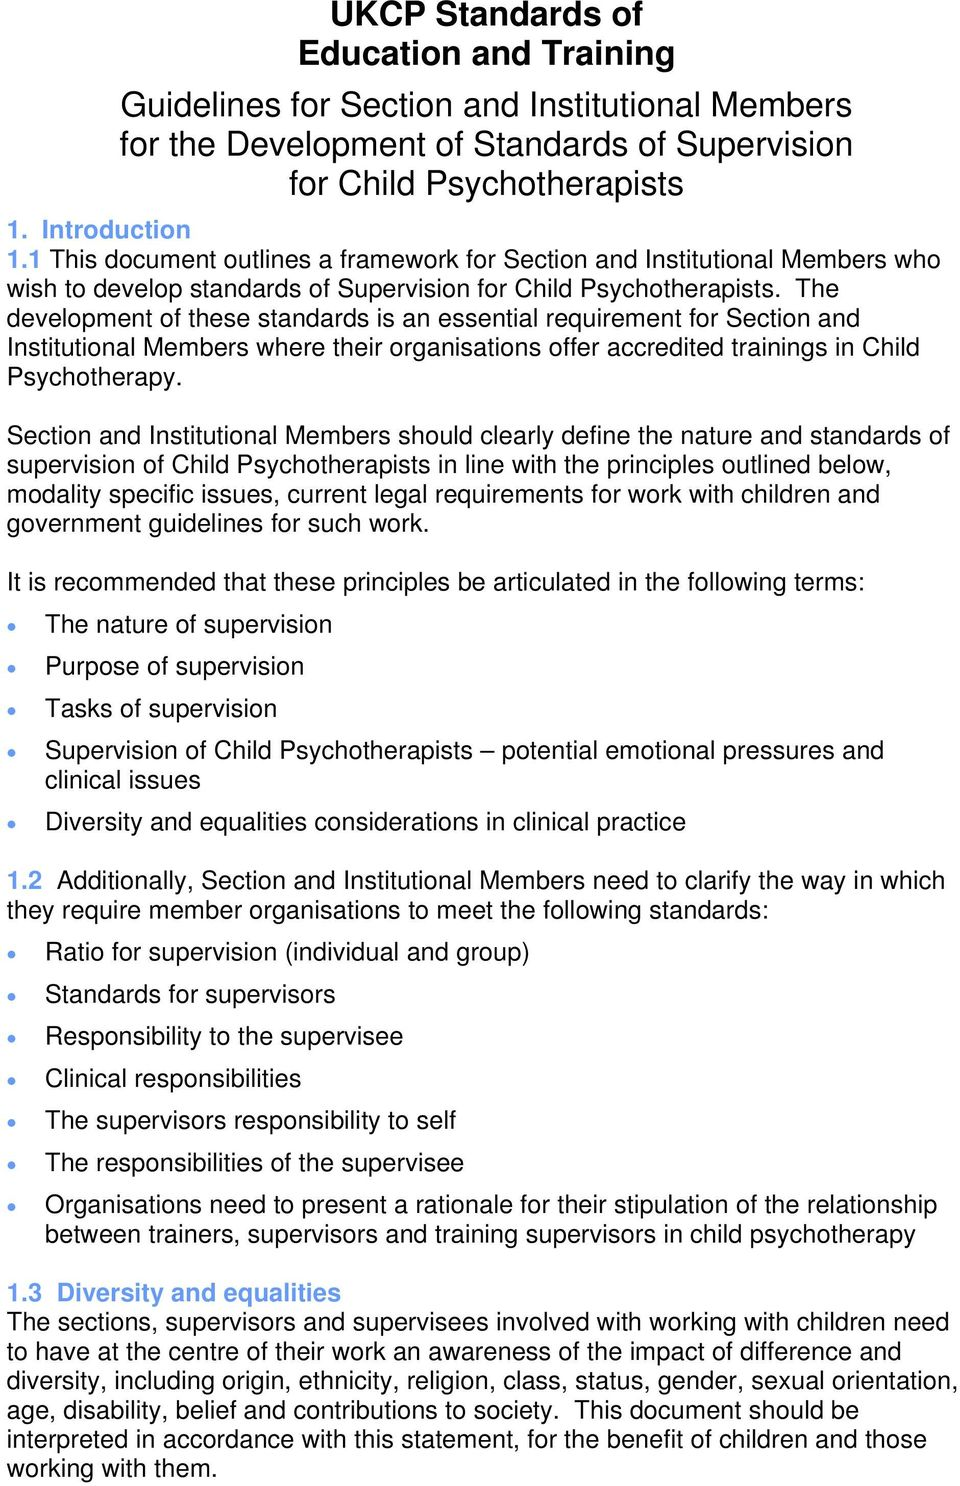 The development of these standards is an essential requirement for Section and Institutional Members where their organisations offer accredited trainings in Child Psychotherapy.